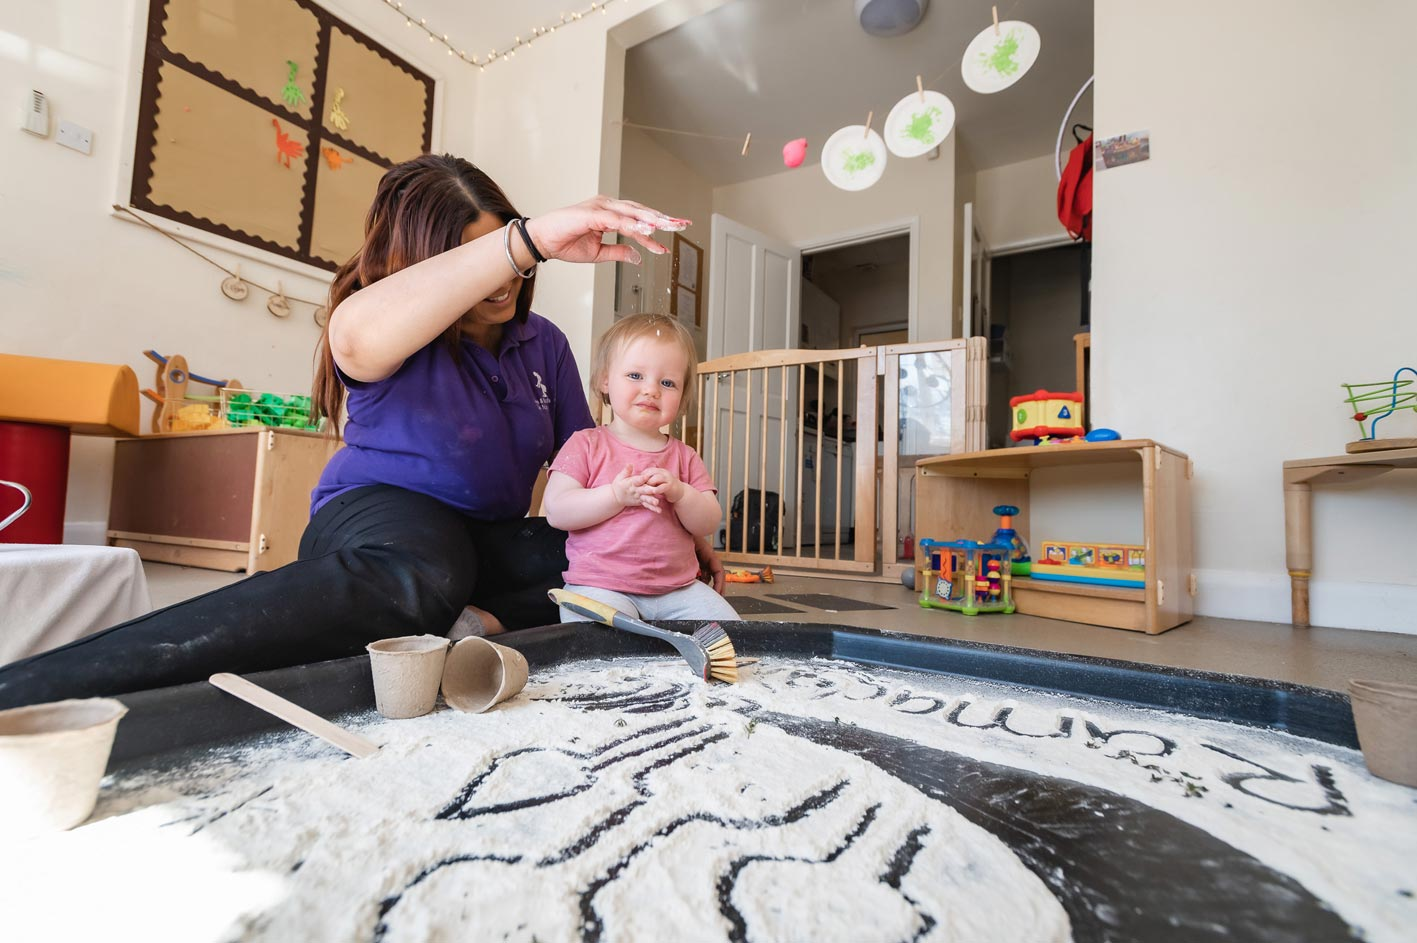 A childcare professional helps an under-five learn through messy play.